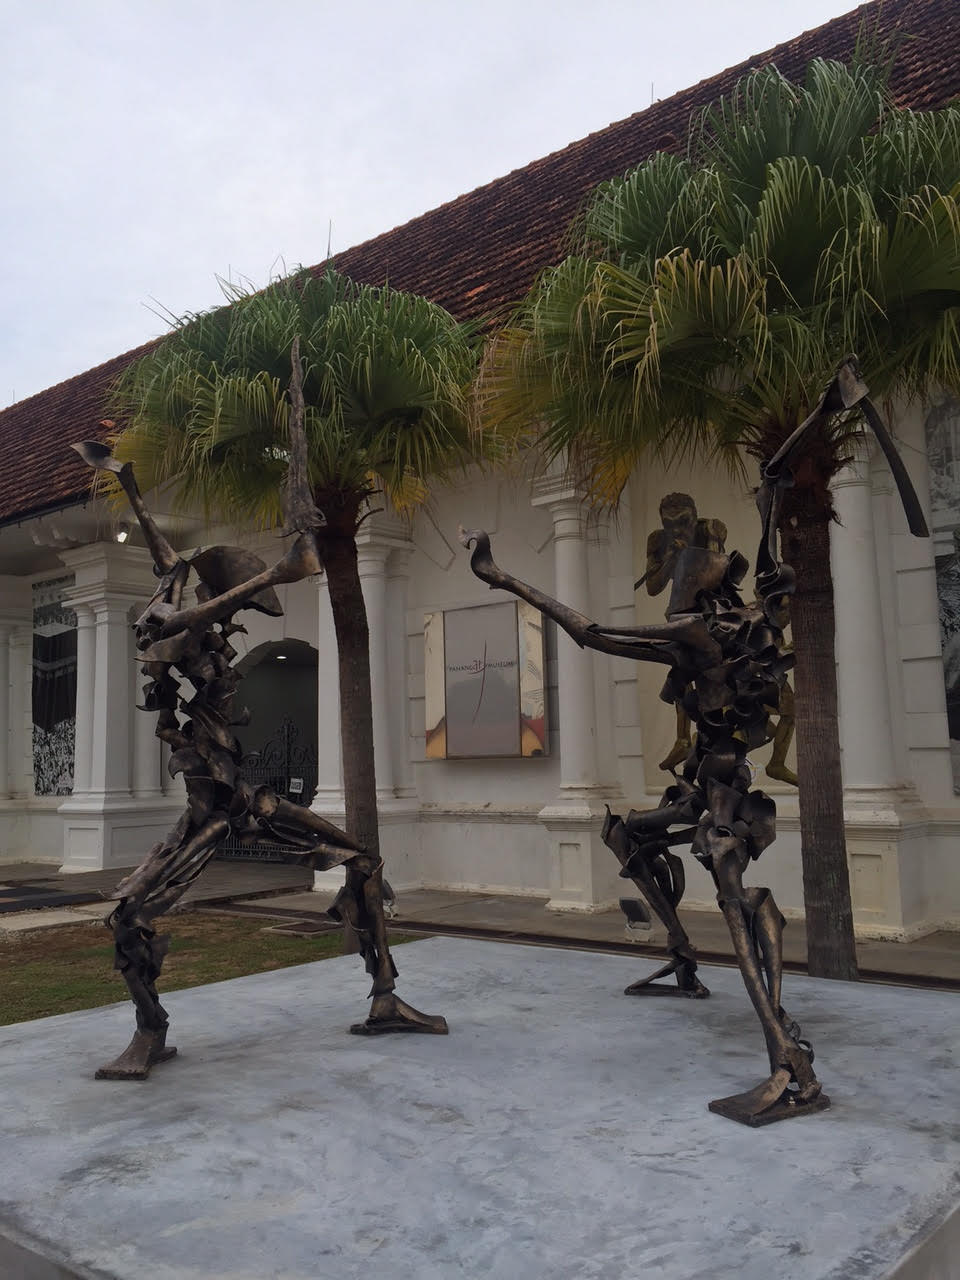 Scupltures engaged in Silat, a Malaysian martial arts, in front of the Pahang Art Museum.